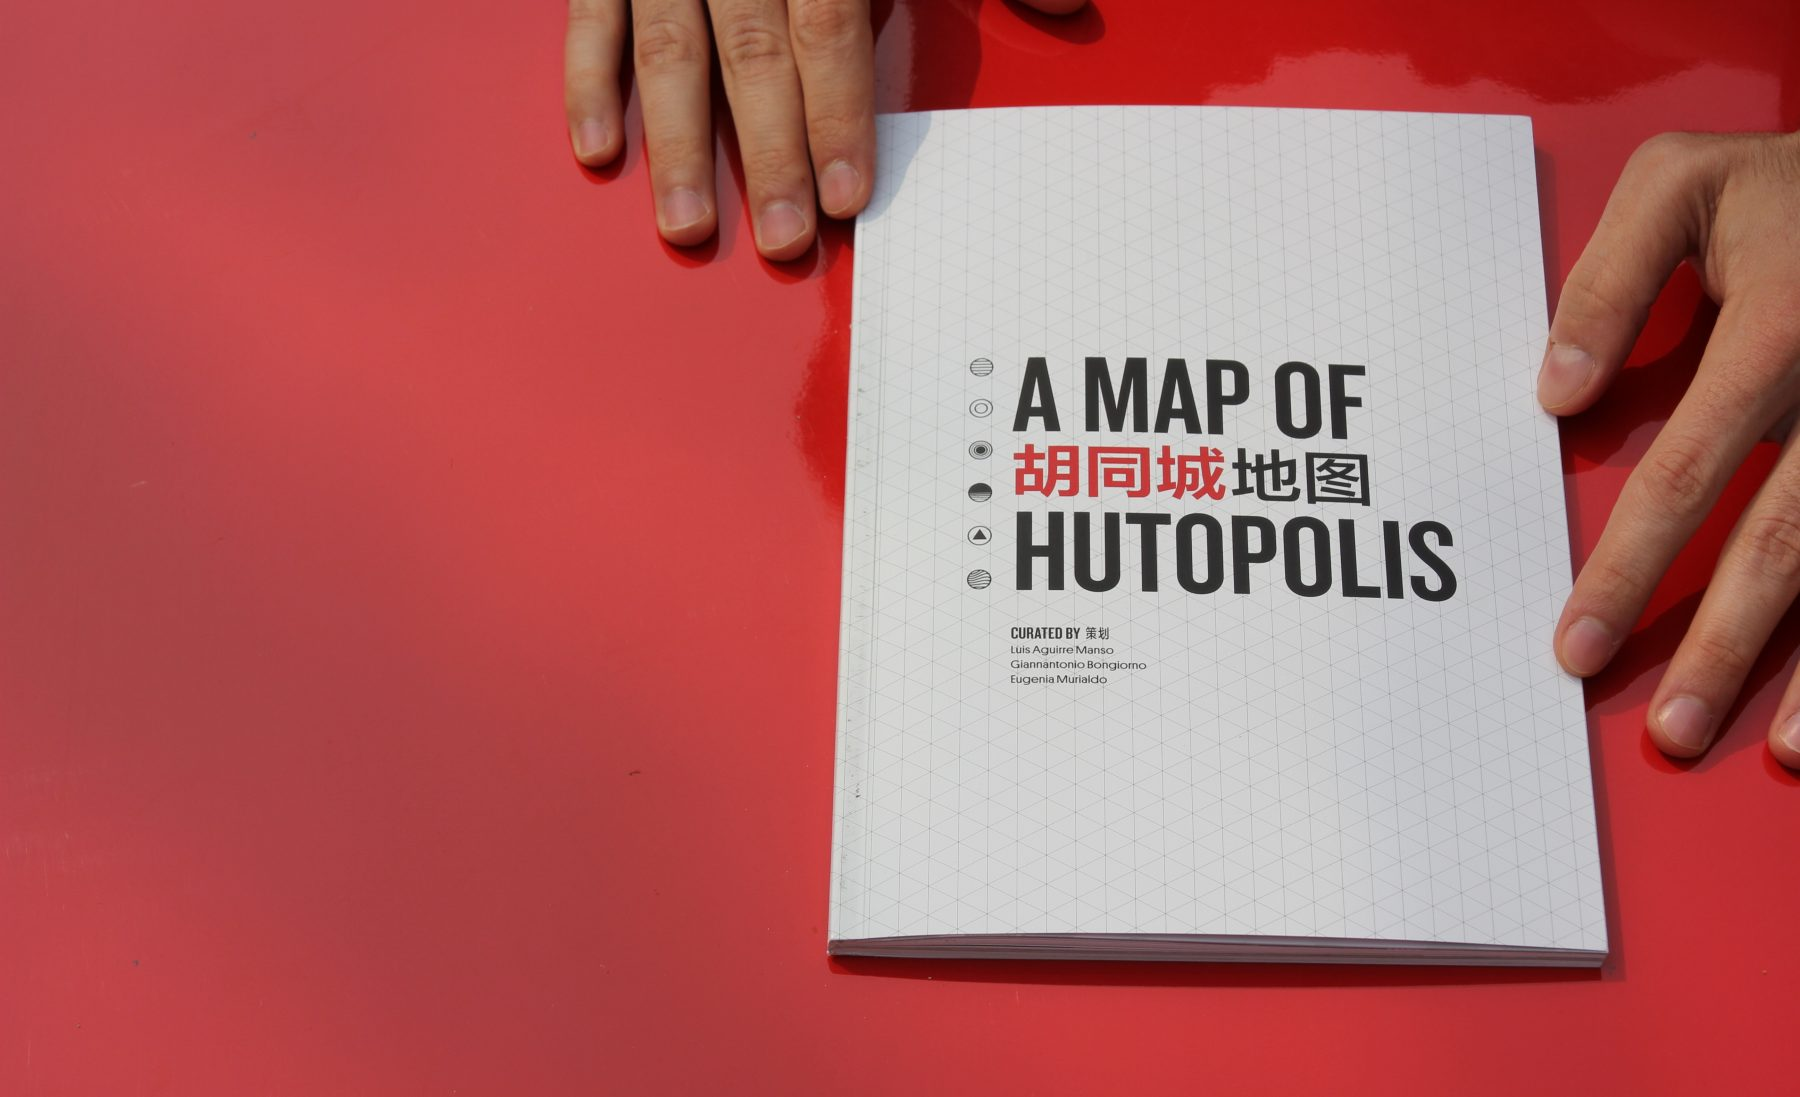 A map of hutopolis, book preview, luis aguirre manso, giannantonio bongiorno, eugenia murialdo